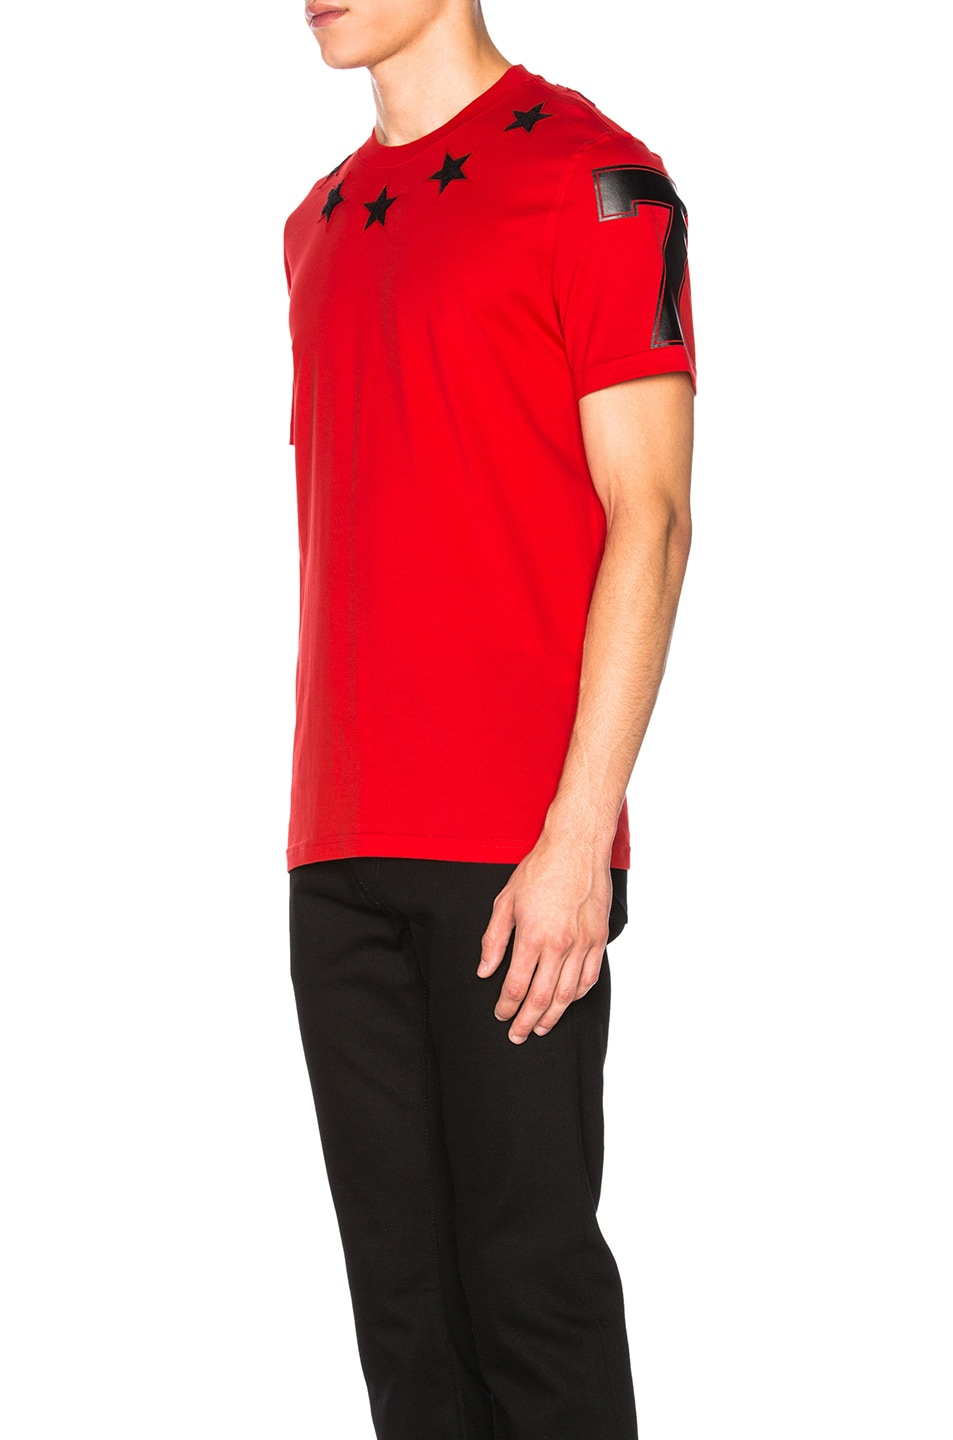 givenchy red star t shirt sale   OFF78% Discounts ff25affc8071